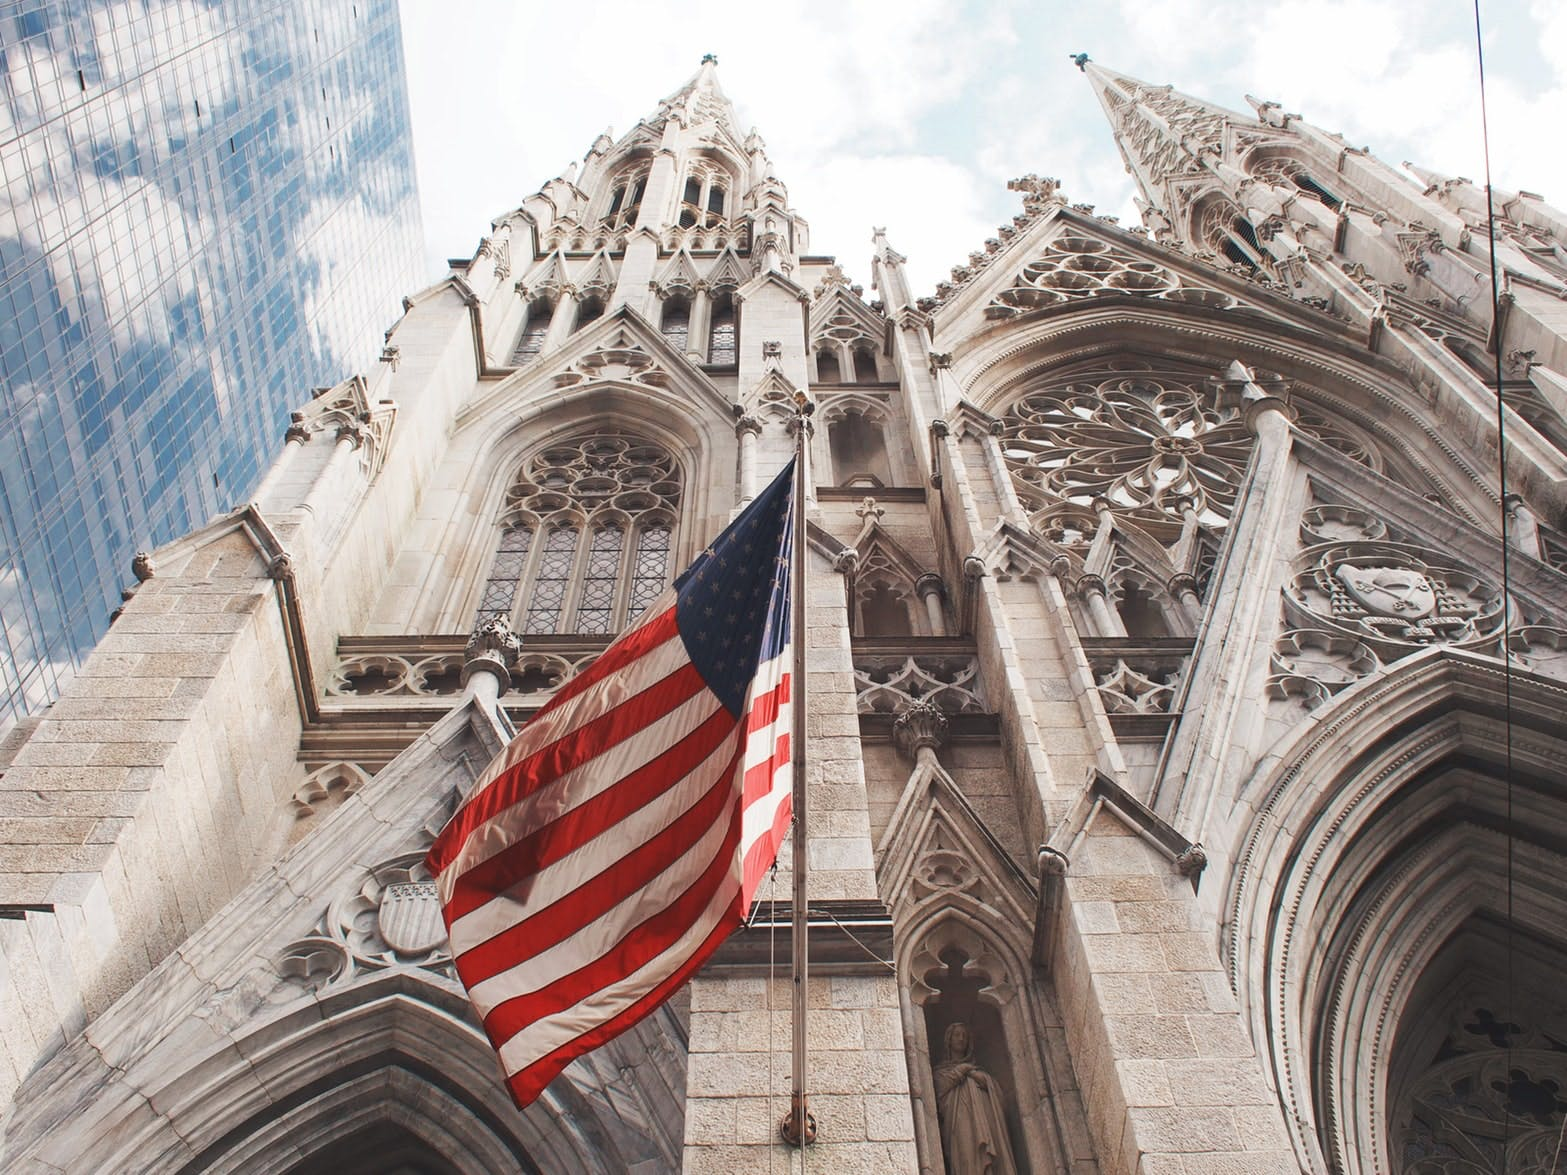 US Adults See Evangelicals Through a Political Lens – Barna Group